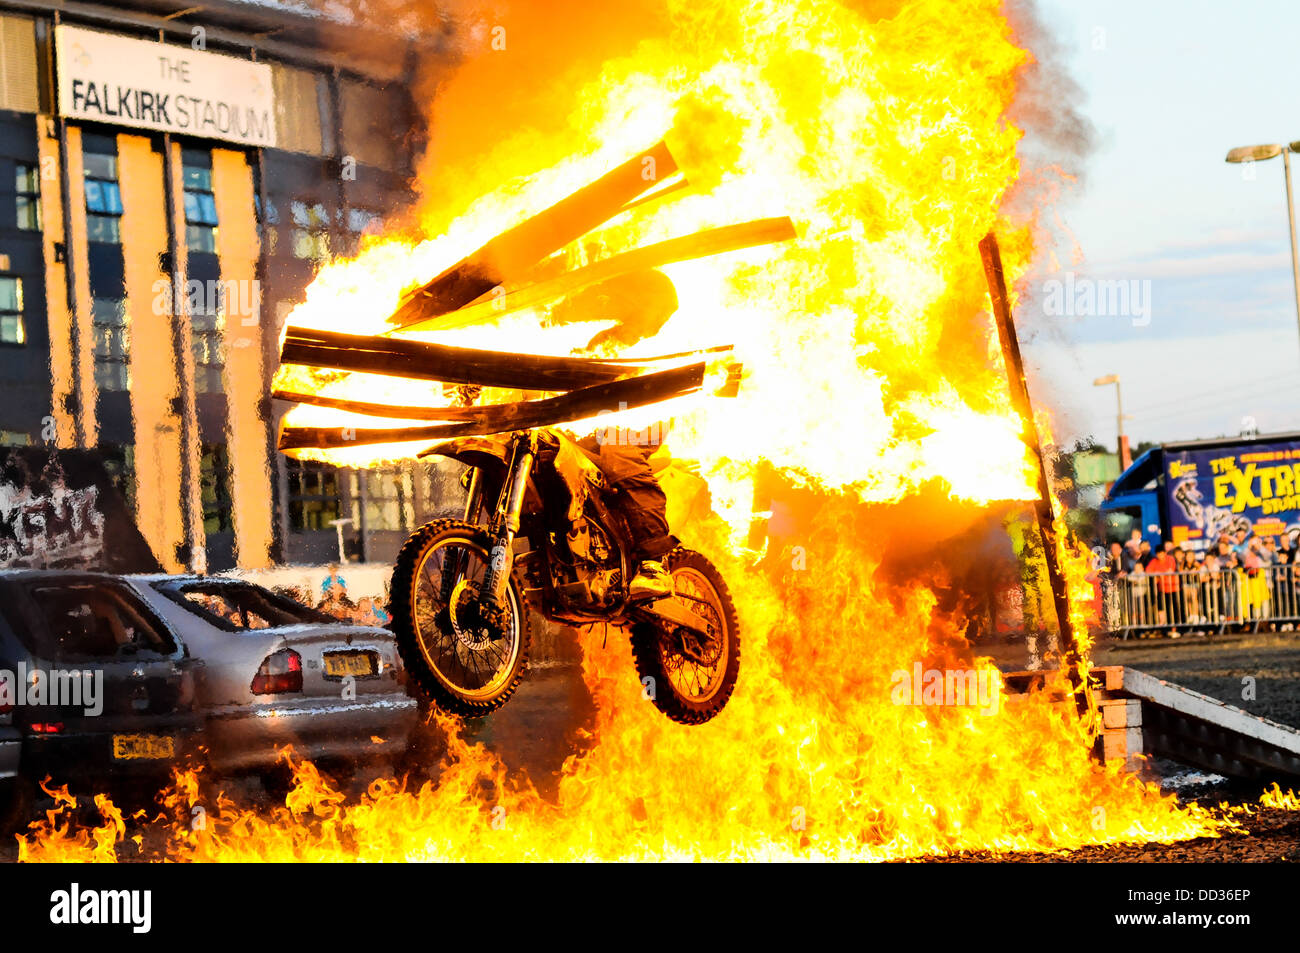 A dirt bike leaps through a wall of fire at the Extreme Stunt Show at Falkirk Stadium. - Stock Image